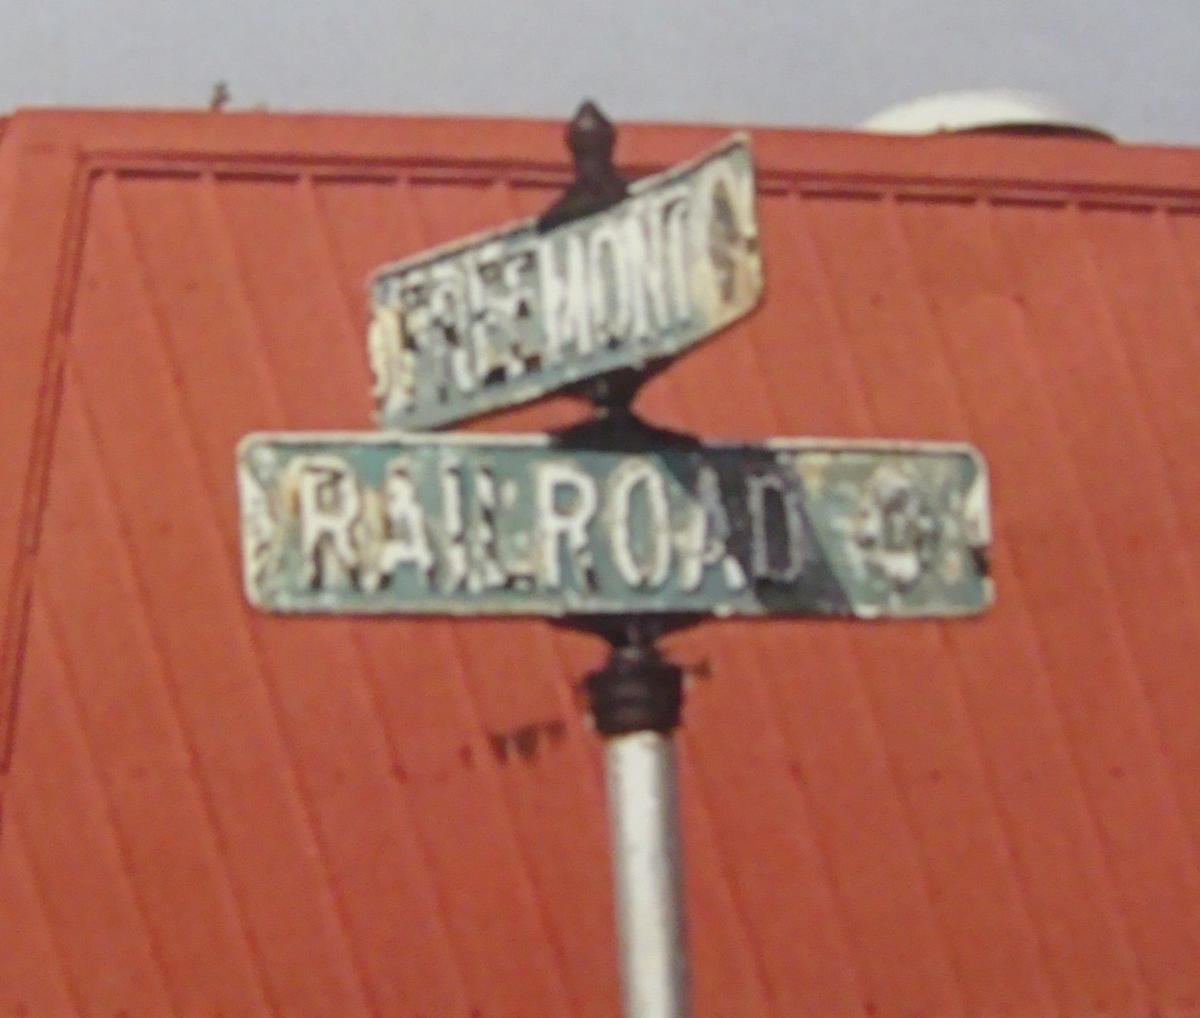 Street Sign at Corner of E. Railroad and Freemont Streets in Sandwich